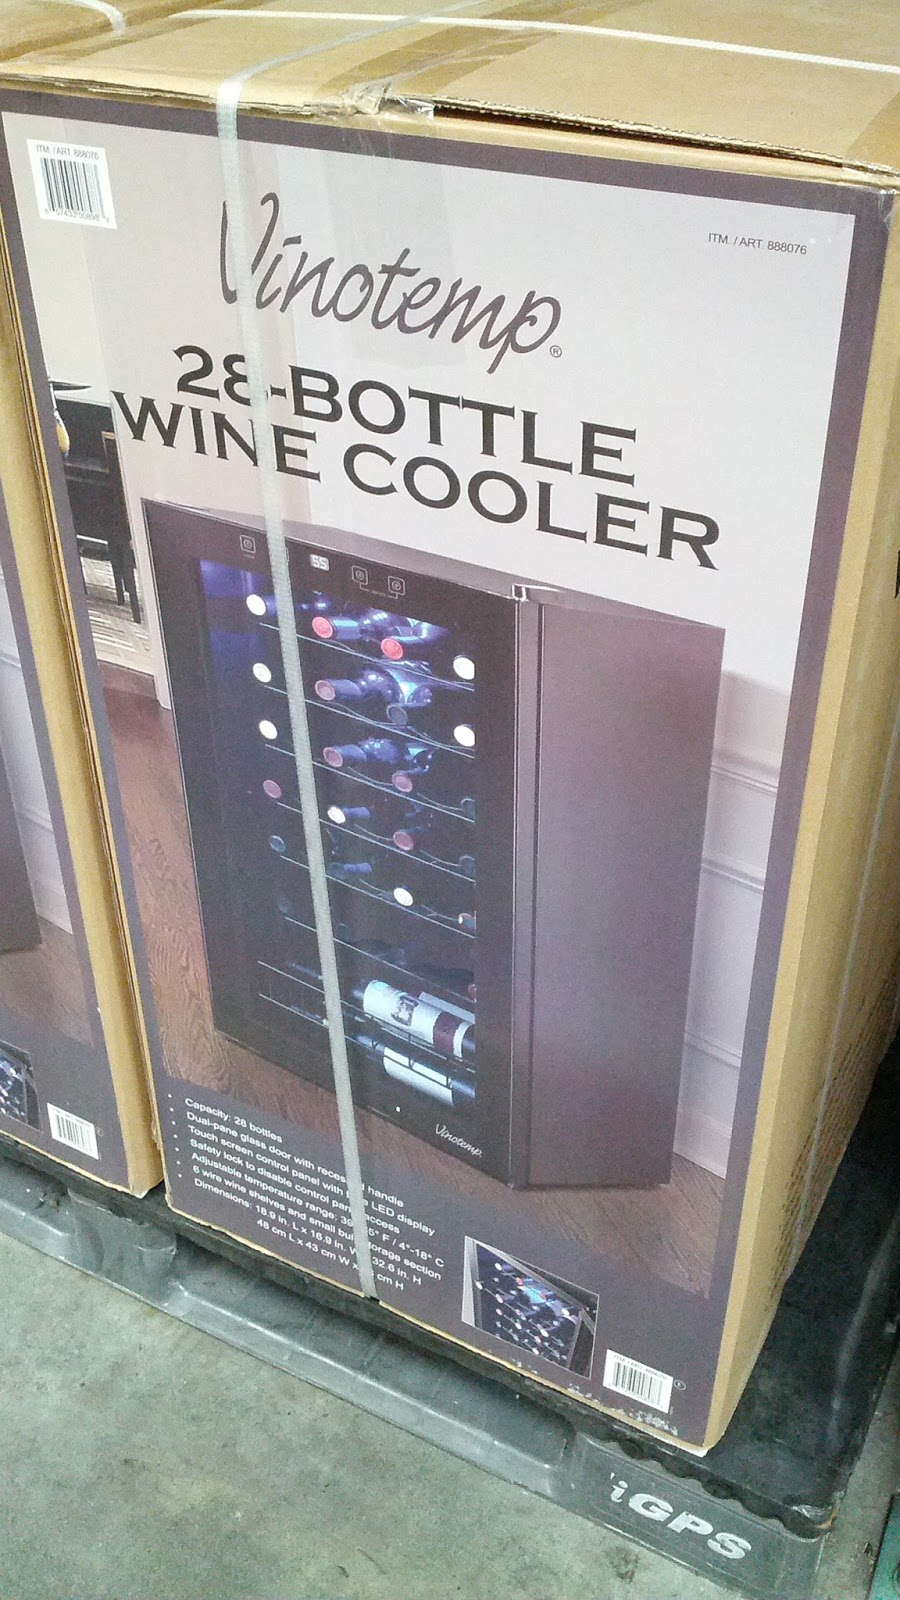 Vinotemp Vt 28ts 28 Bottle Wine Cooler Costco Weekender